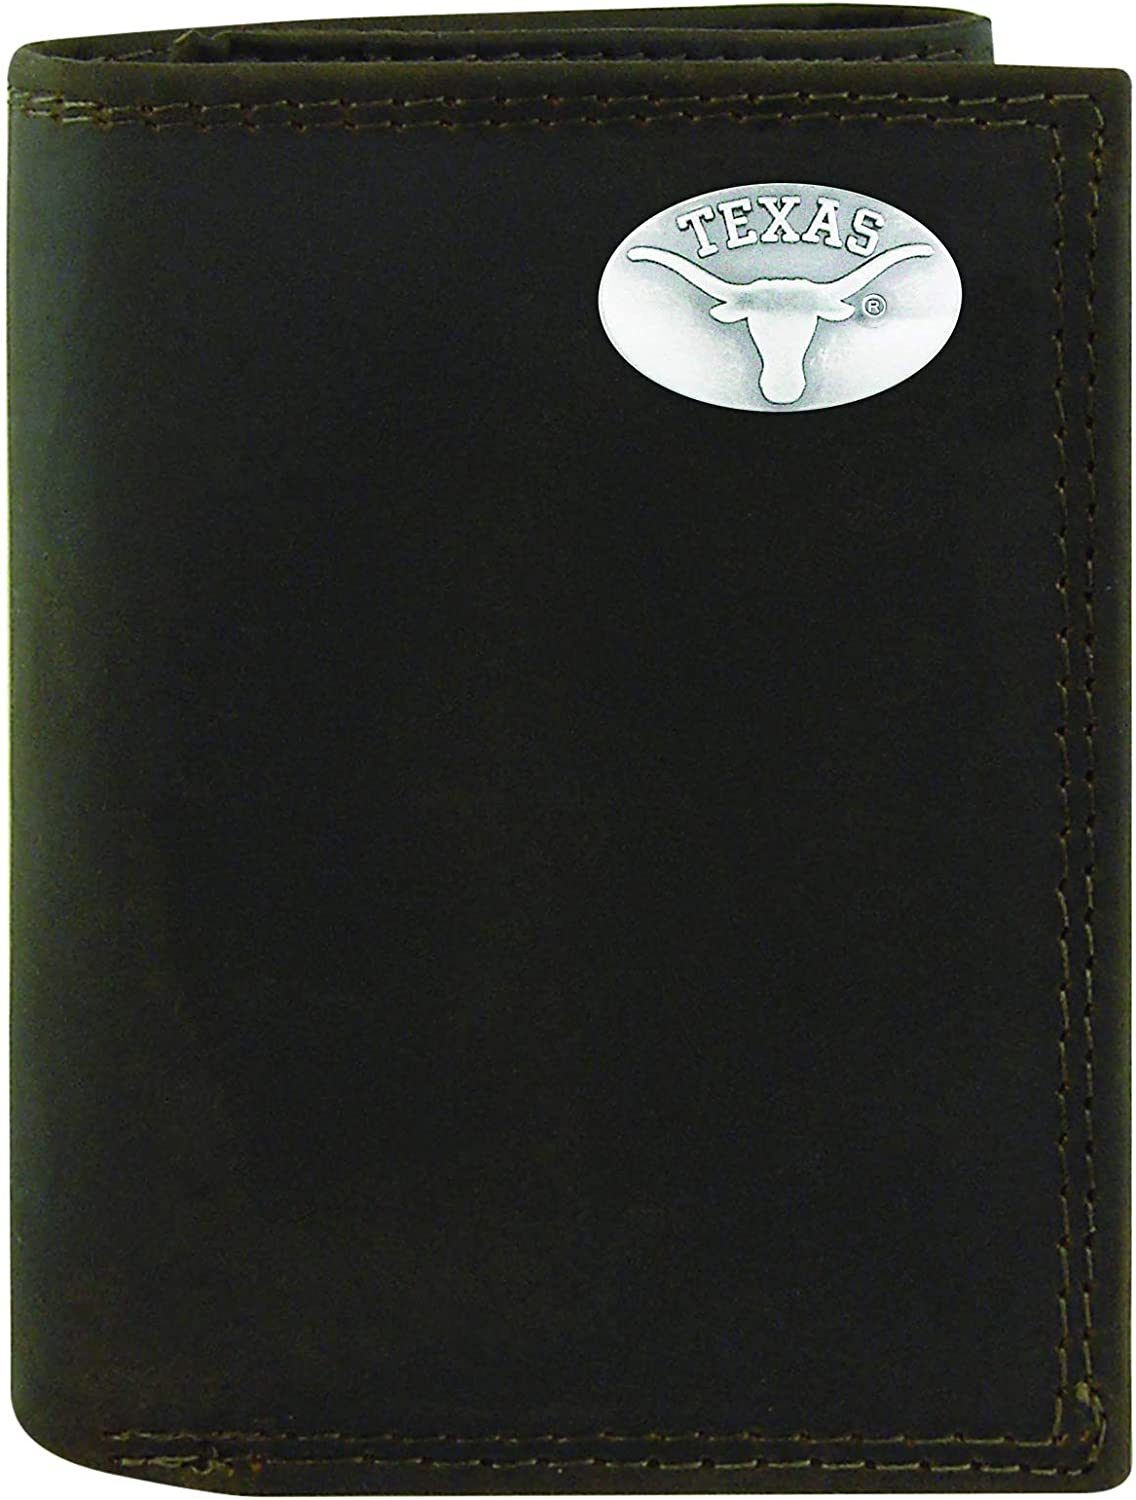 Zeppelin Products Inc. Trifold Wallet Men's free Now free shipping